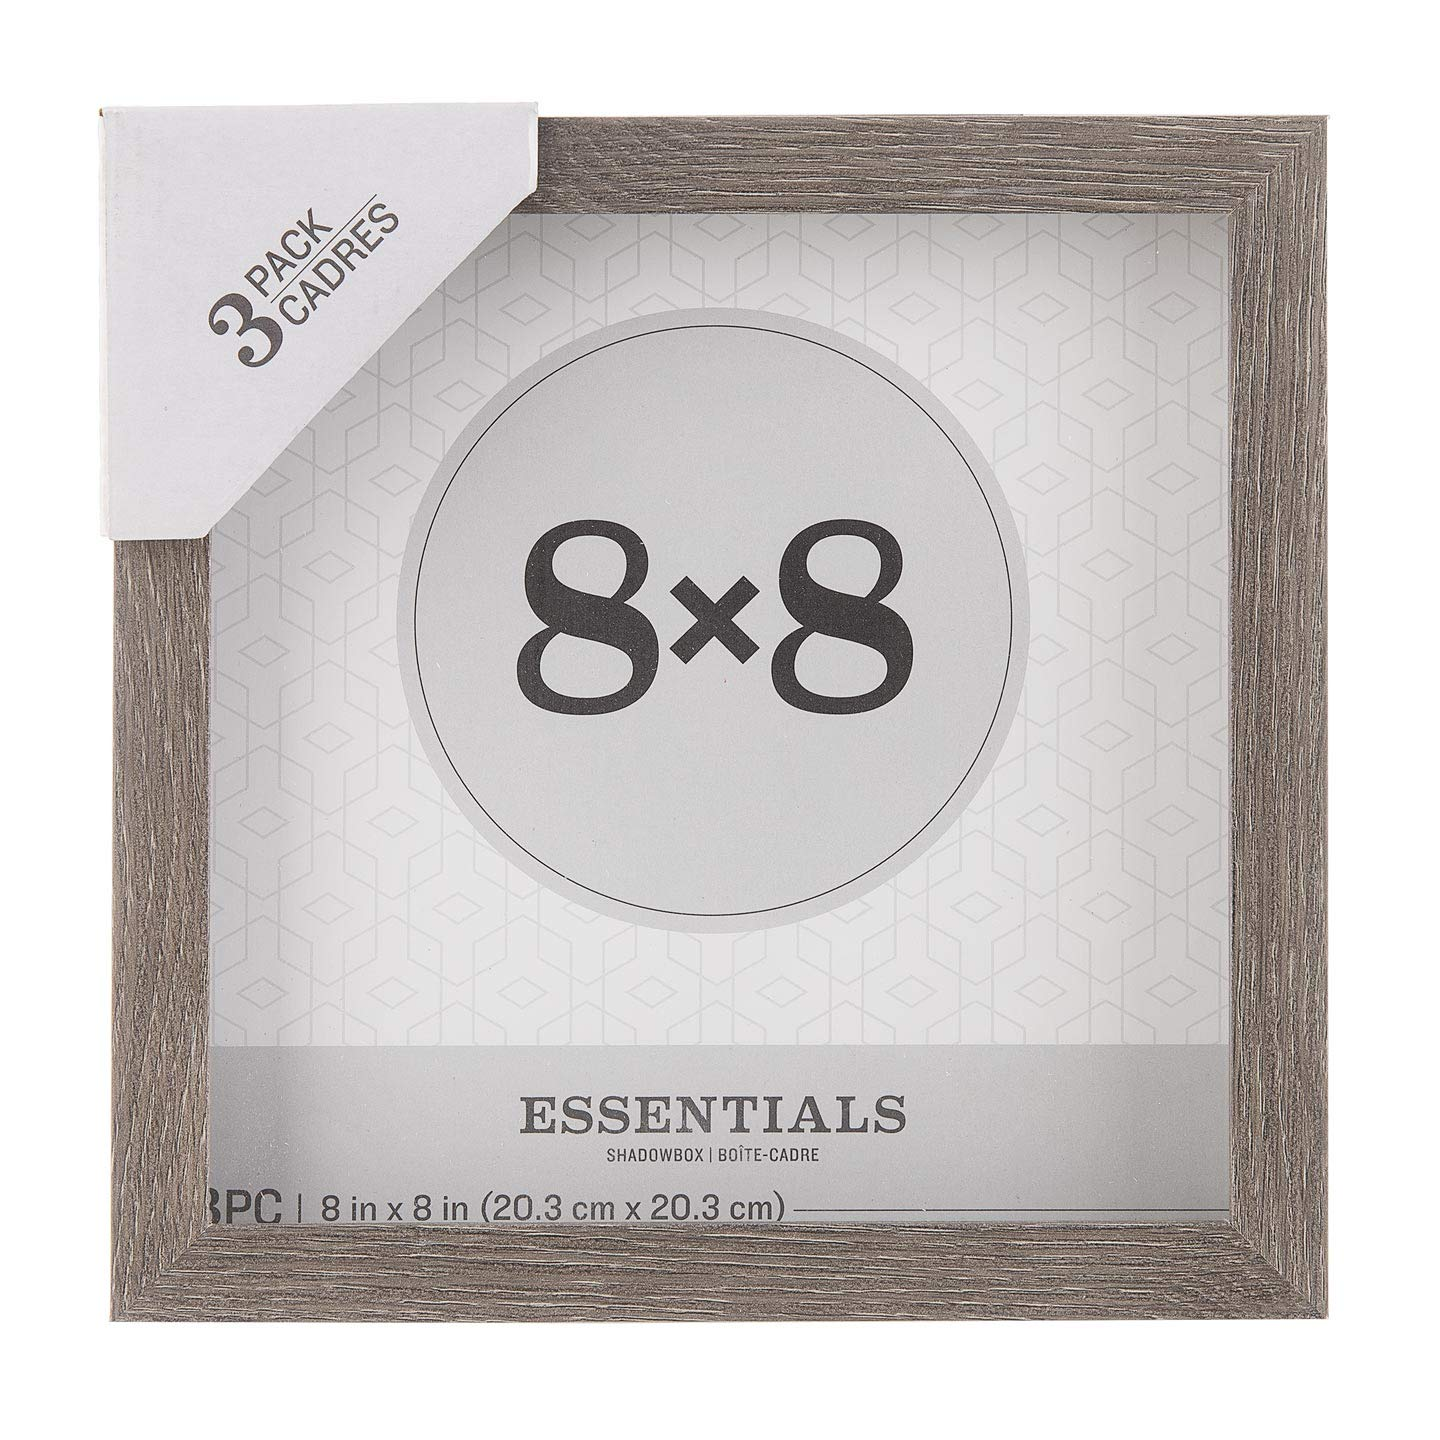 Darice Essentials Gray 8 x 8 inches, 3 Pieces Shadow Box, by Darice